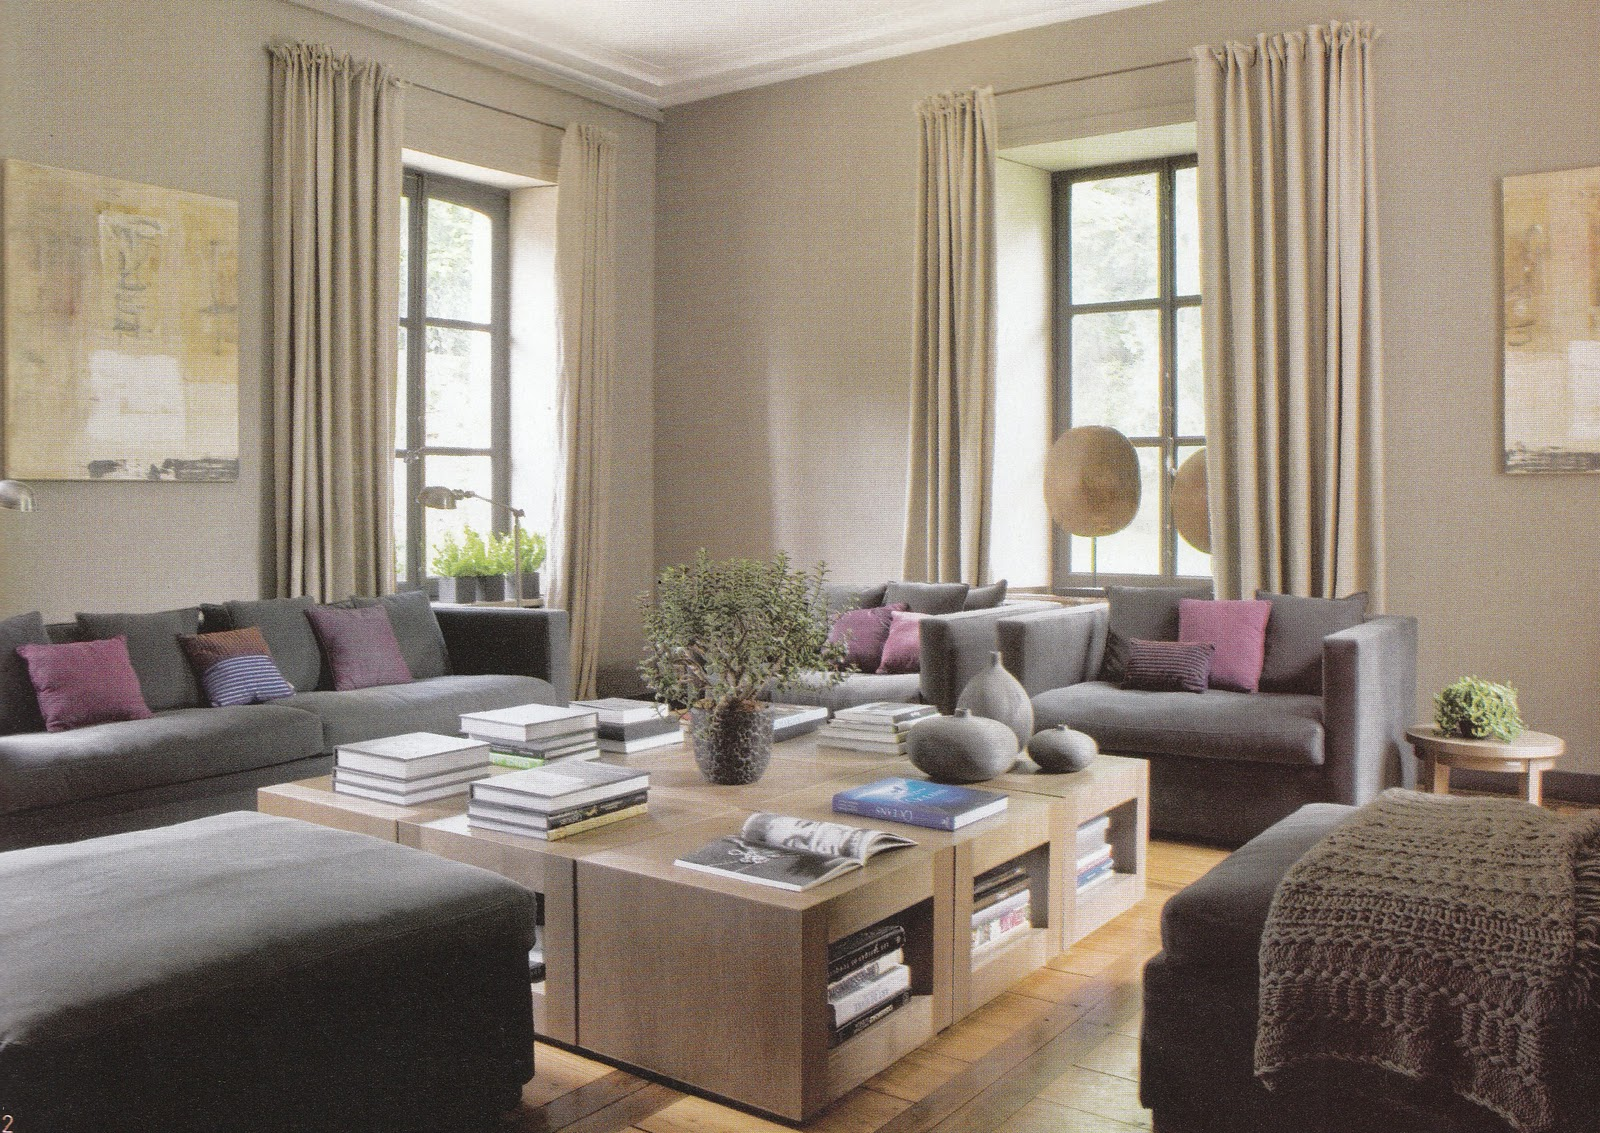 Isabelle h d coration et home staging novembre 2011 for Peinture gris perle salon